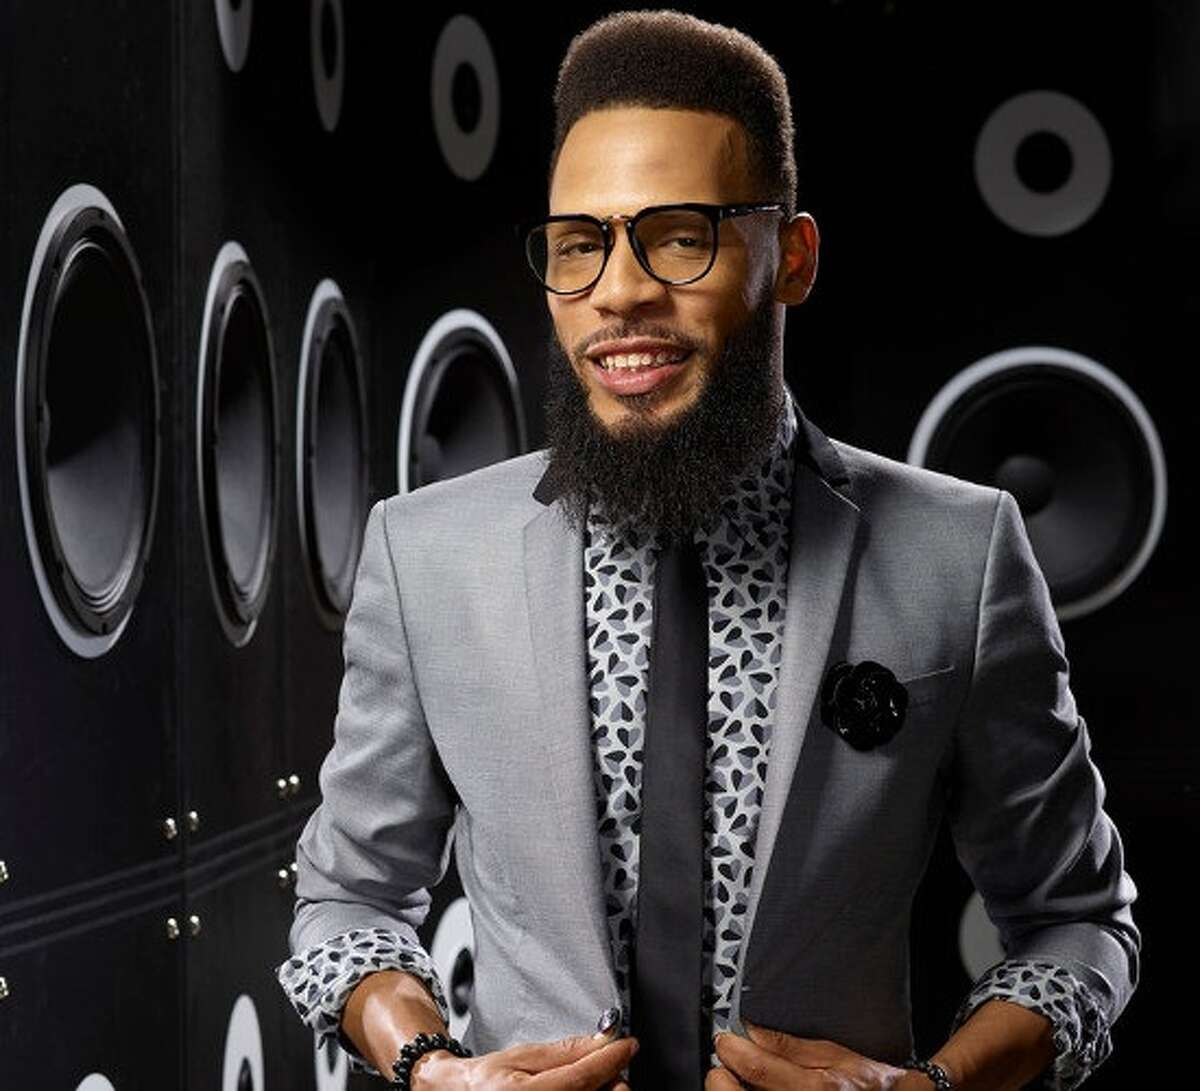 Galleria Ice Spectacular will feature TSoul, of The Voice this year